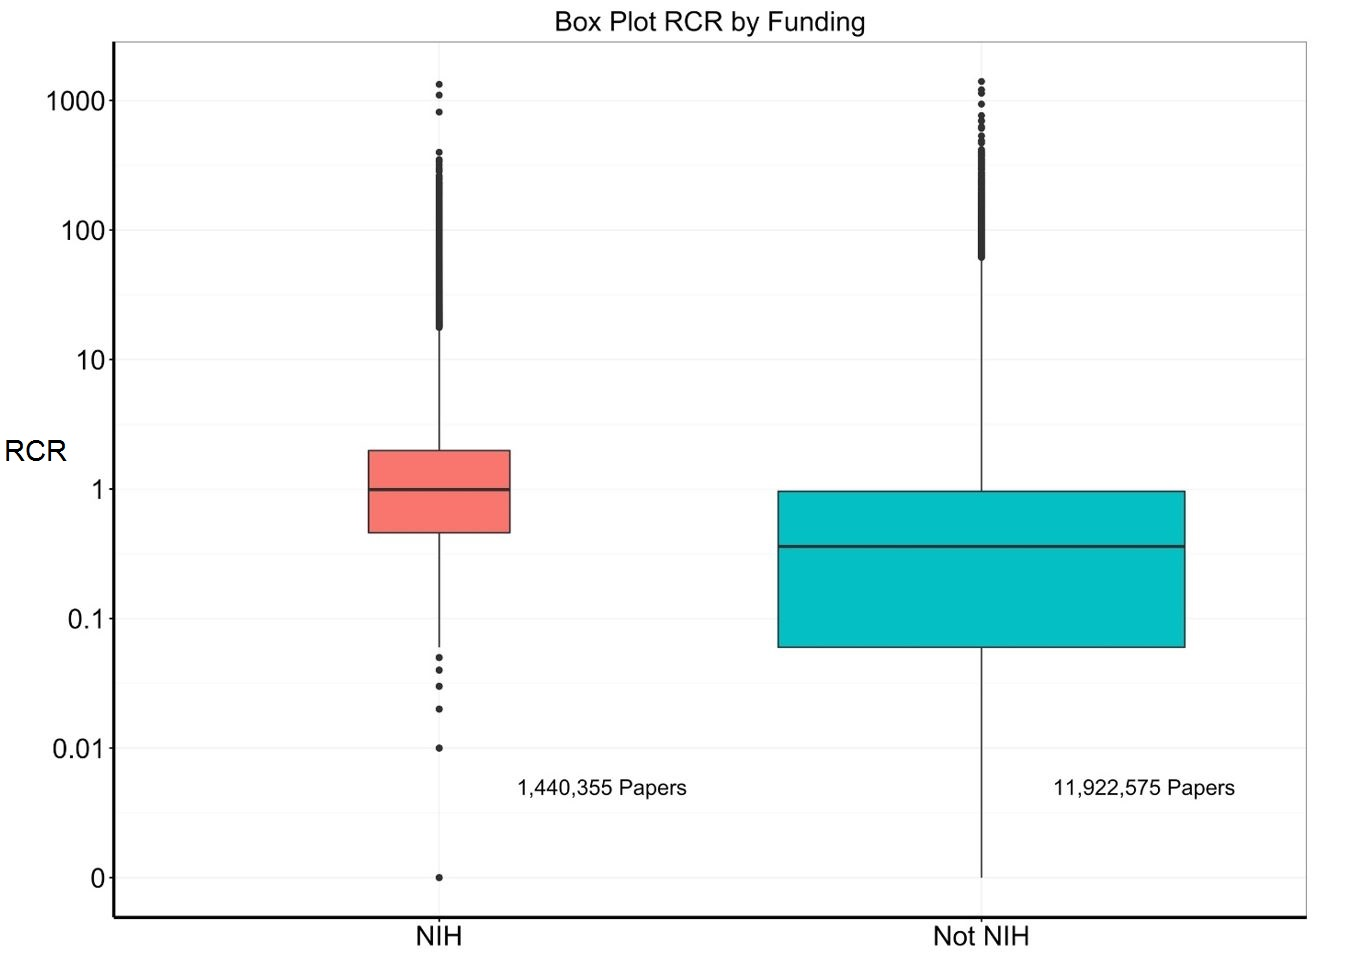 Blog nih extramural nexus box plots of rcrs for nih supported versus non nih supported papers xflitez Image collections